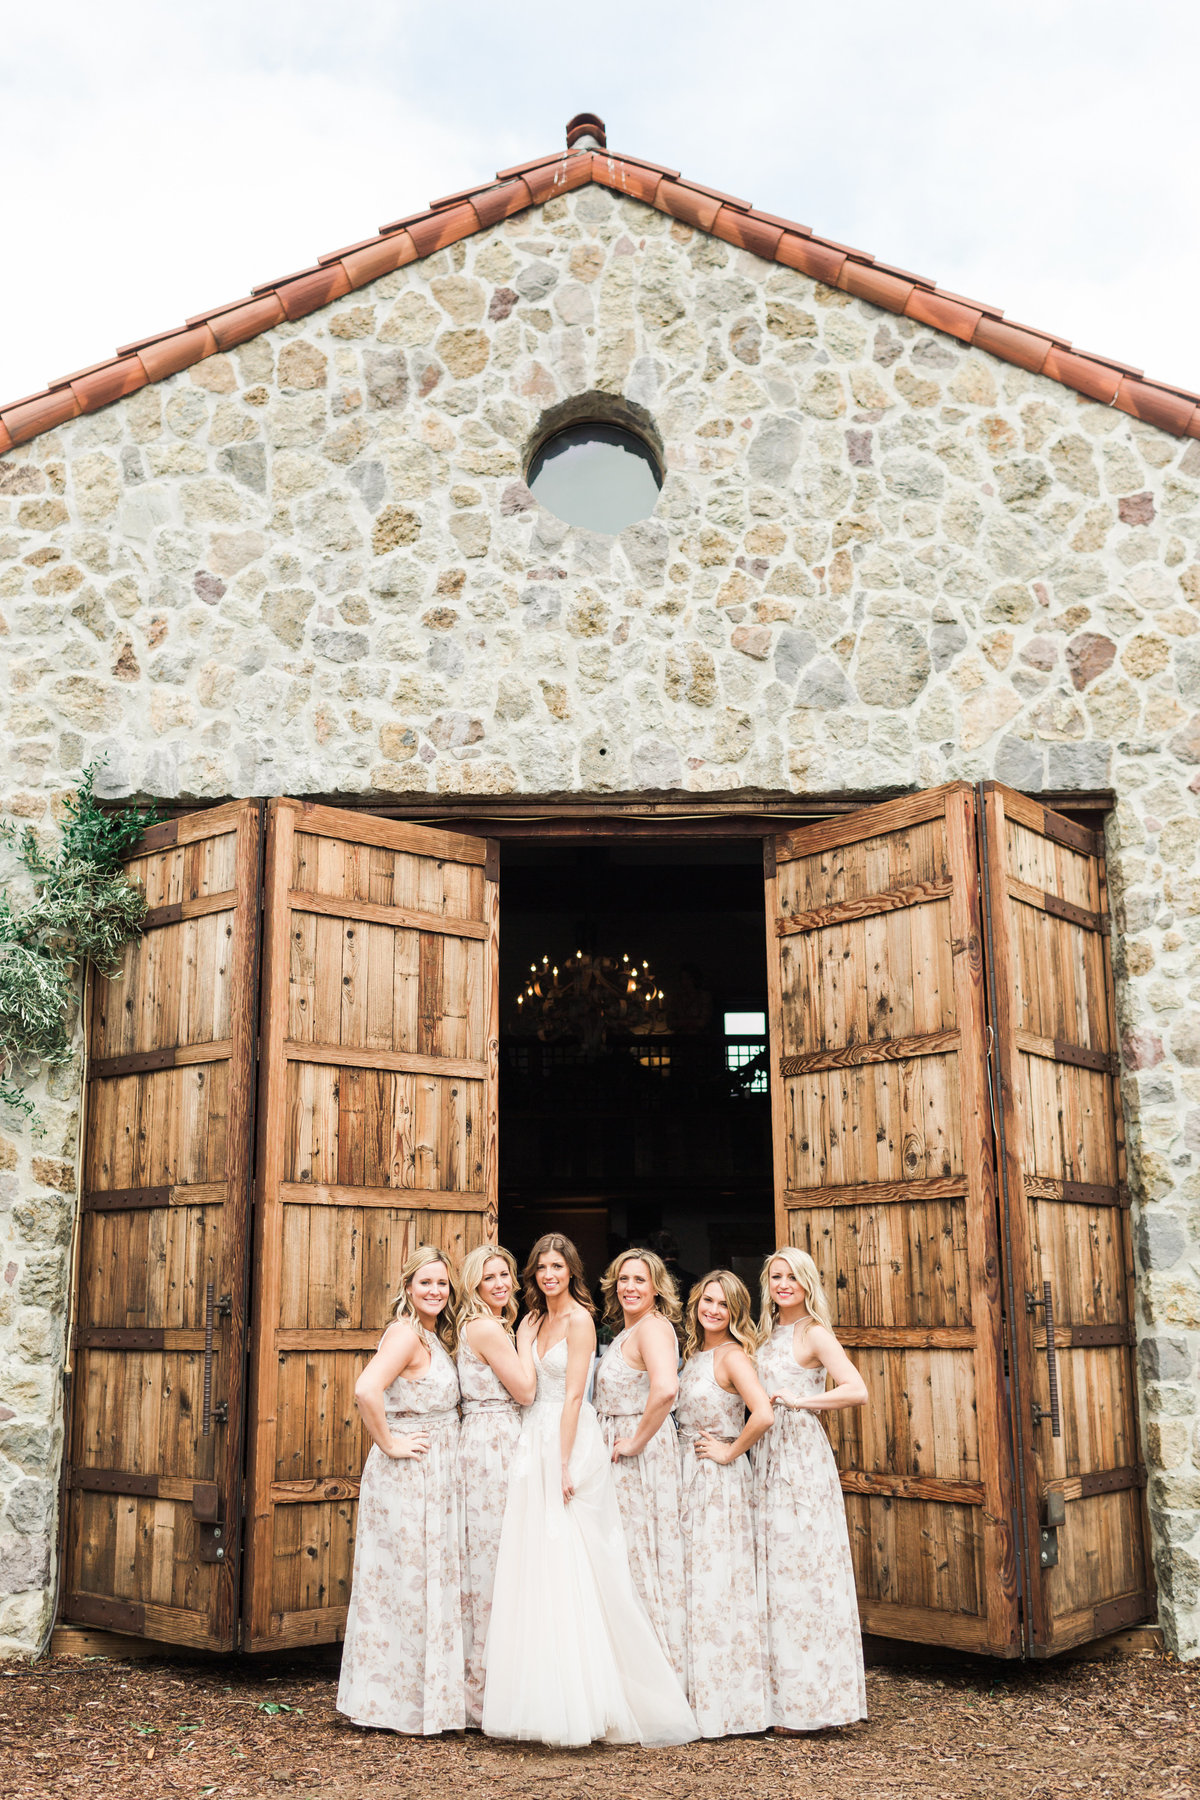 Palihouse_Cielo_Farms_Malibu_Rustic_Wedding_Valorie_Darling_Photography - 52 of 107